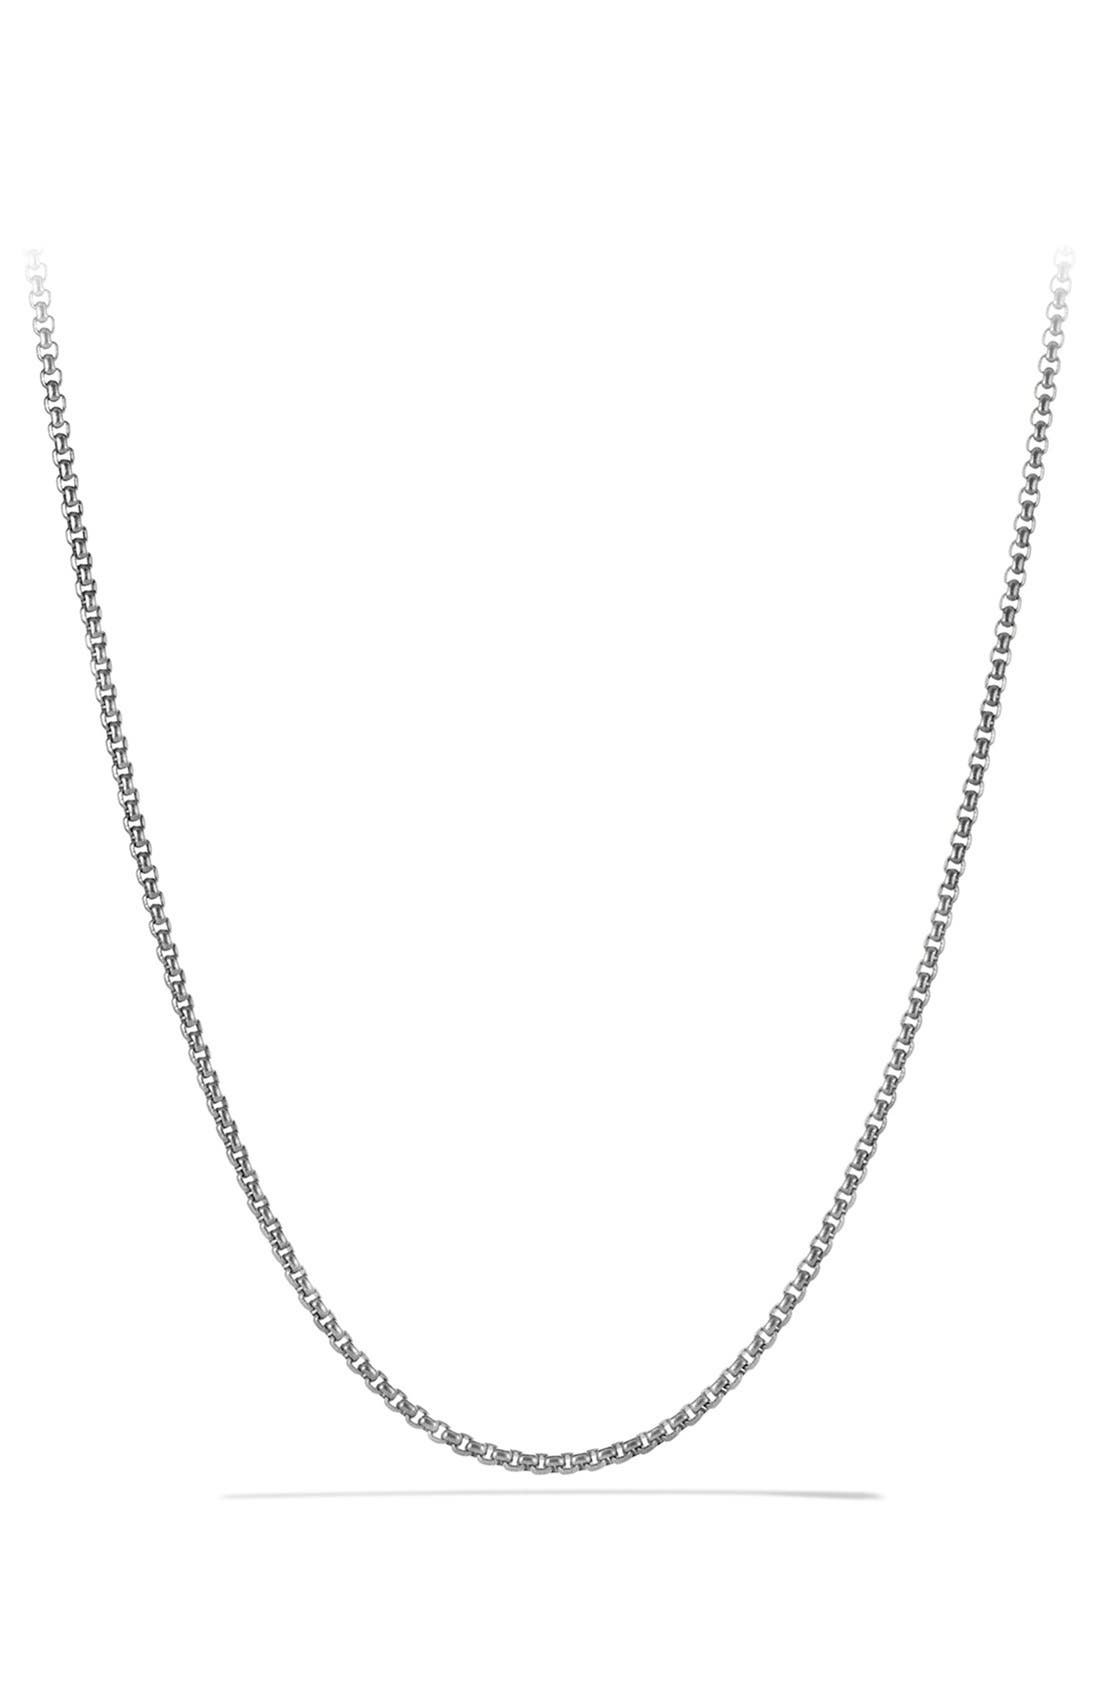 Small Box Chain Necklace,                             Main thumbnail 1, color,                             Titanium/ Silver